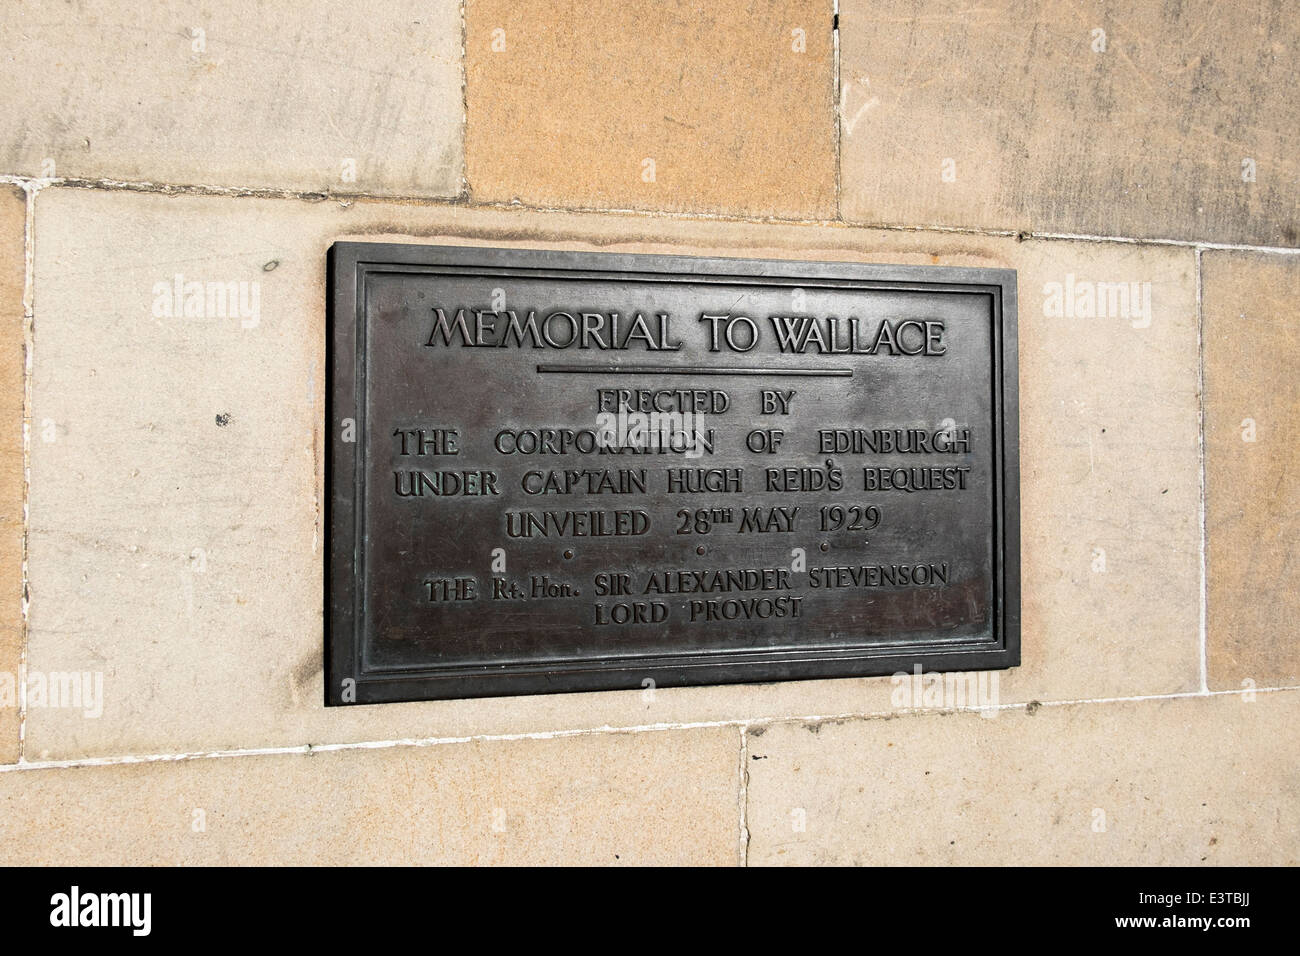 'Memorial to Wallace' label at the Castle's entrance - Stock Image